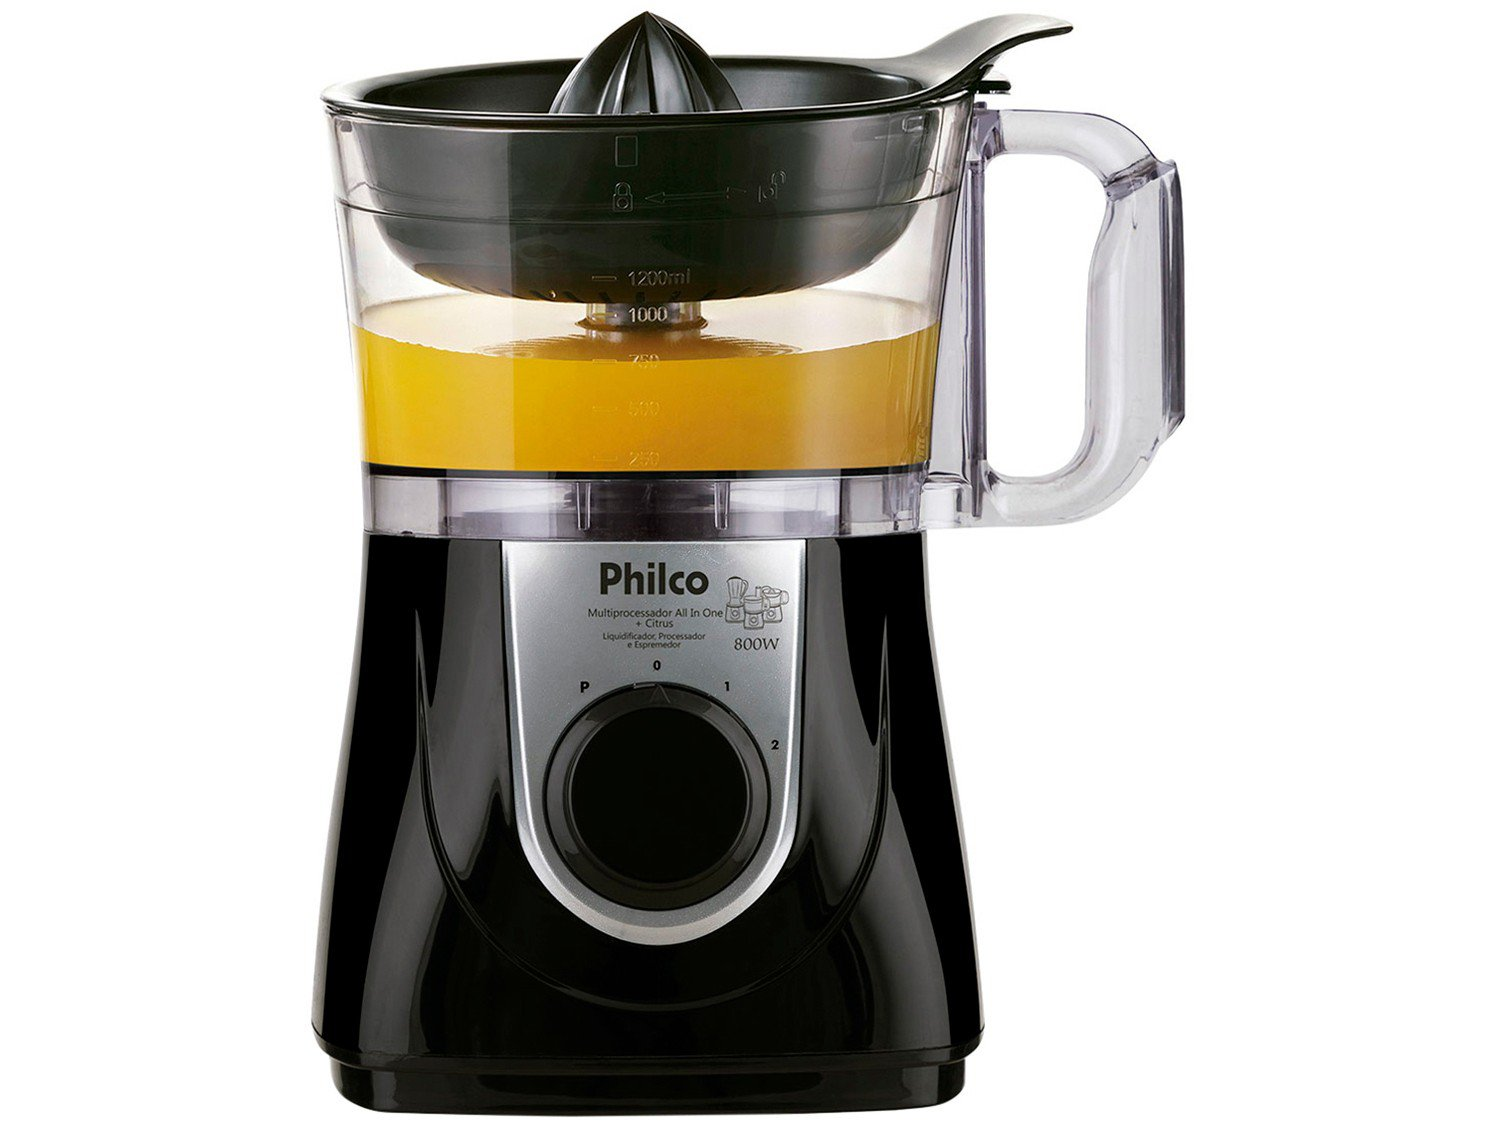 Multiprocessador de Alimentos Philco All In One Citrus + 800W – Preto - 110V - 16